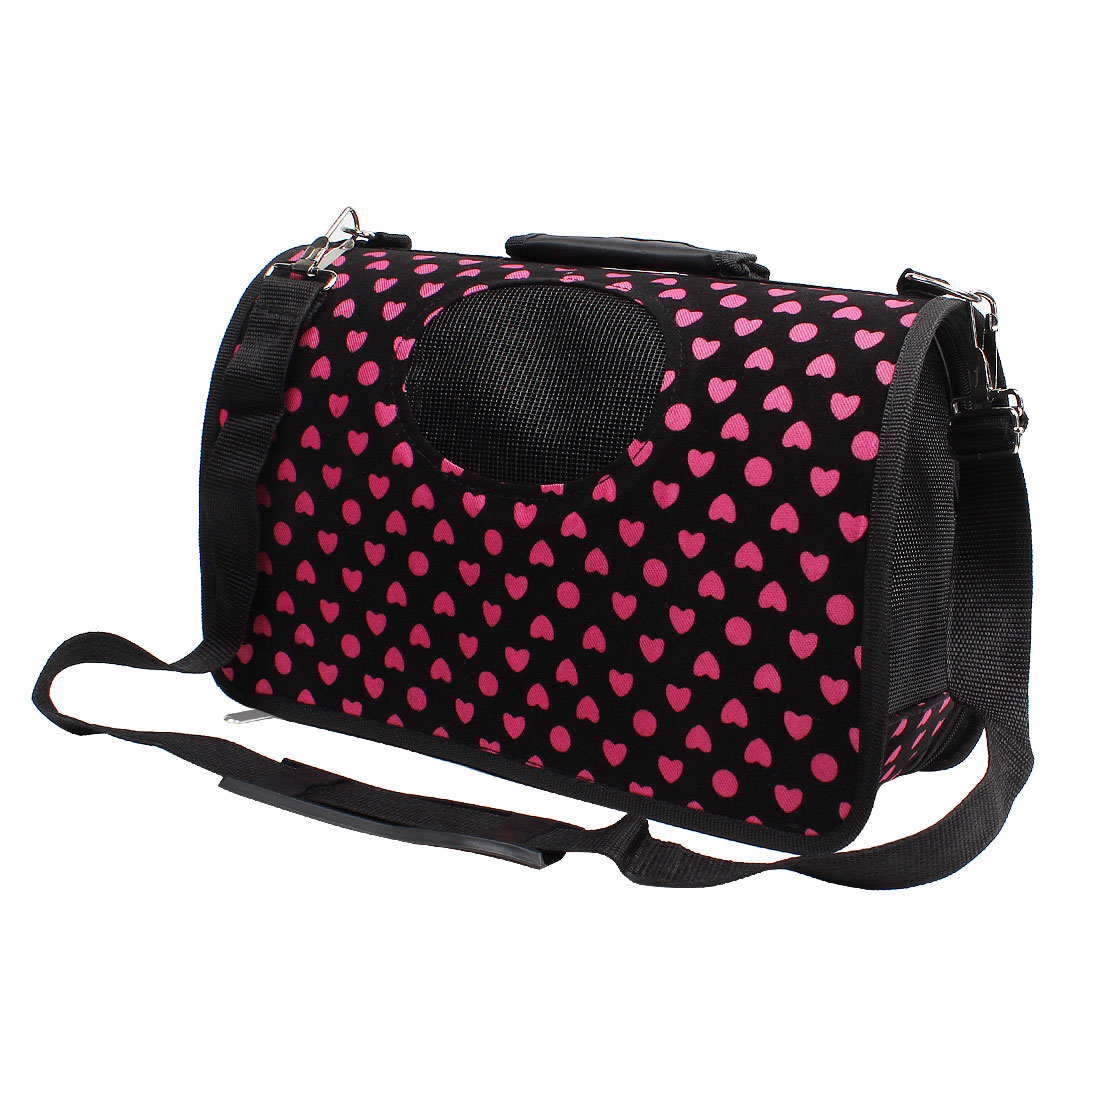 Heart Print Travel Shopping Carrier Carry Zipped Bag Black Pink for Puppy